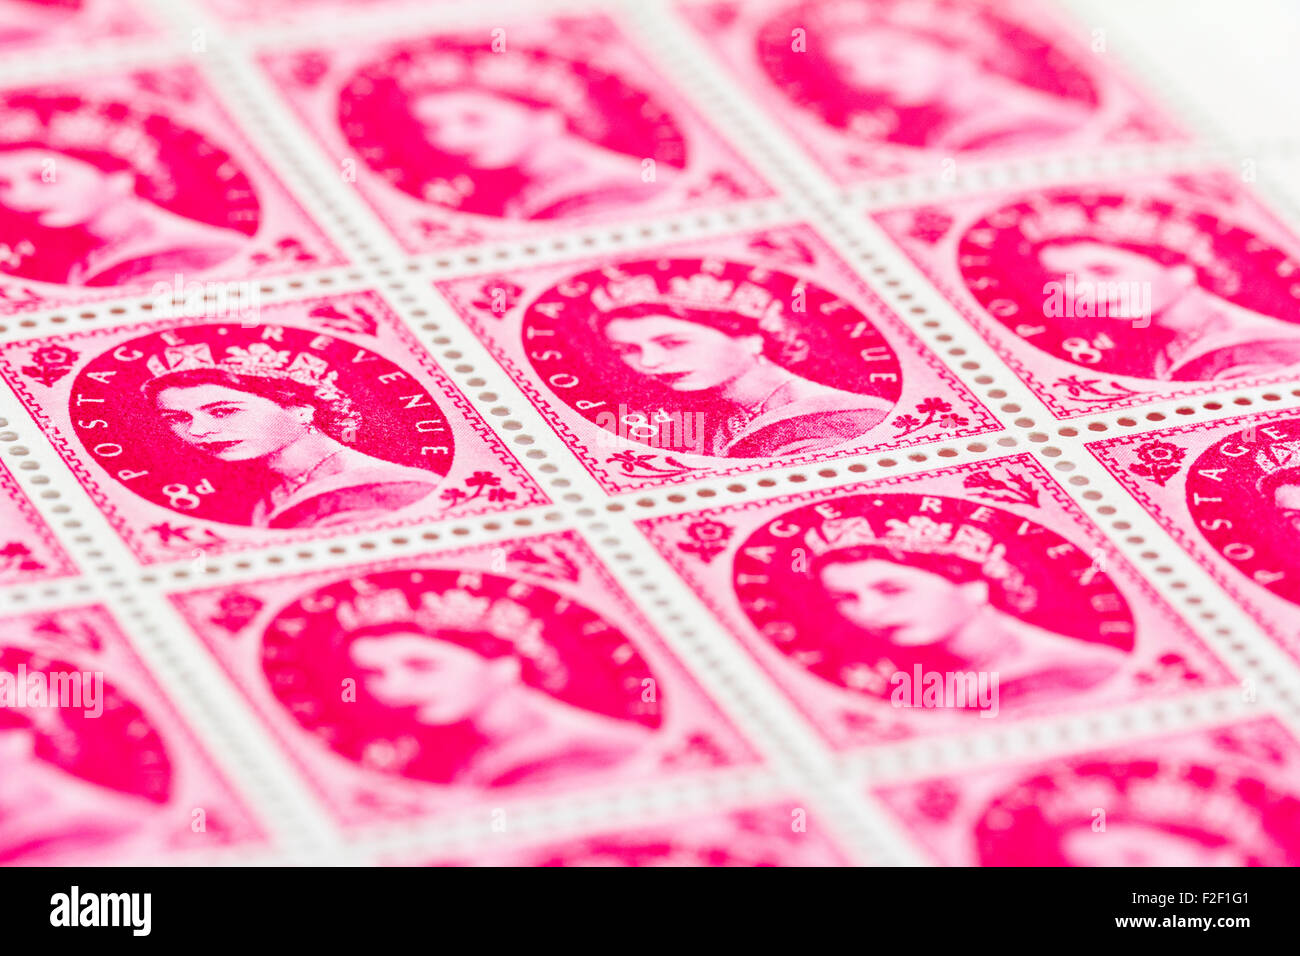 Sheet of 1950's British Royal Mail 8d pink magenta postage stamps from the Wildings definitive issue with portrait - Stock Image